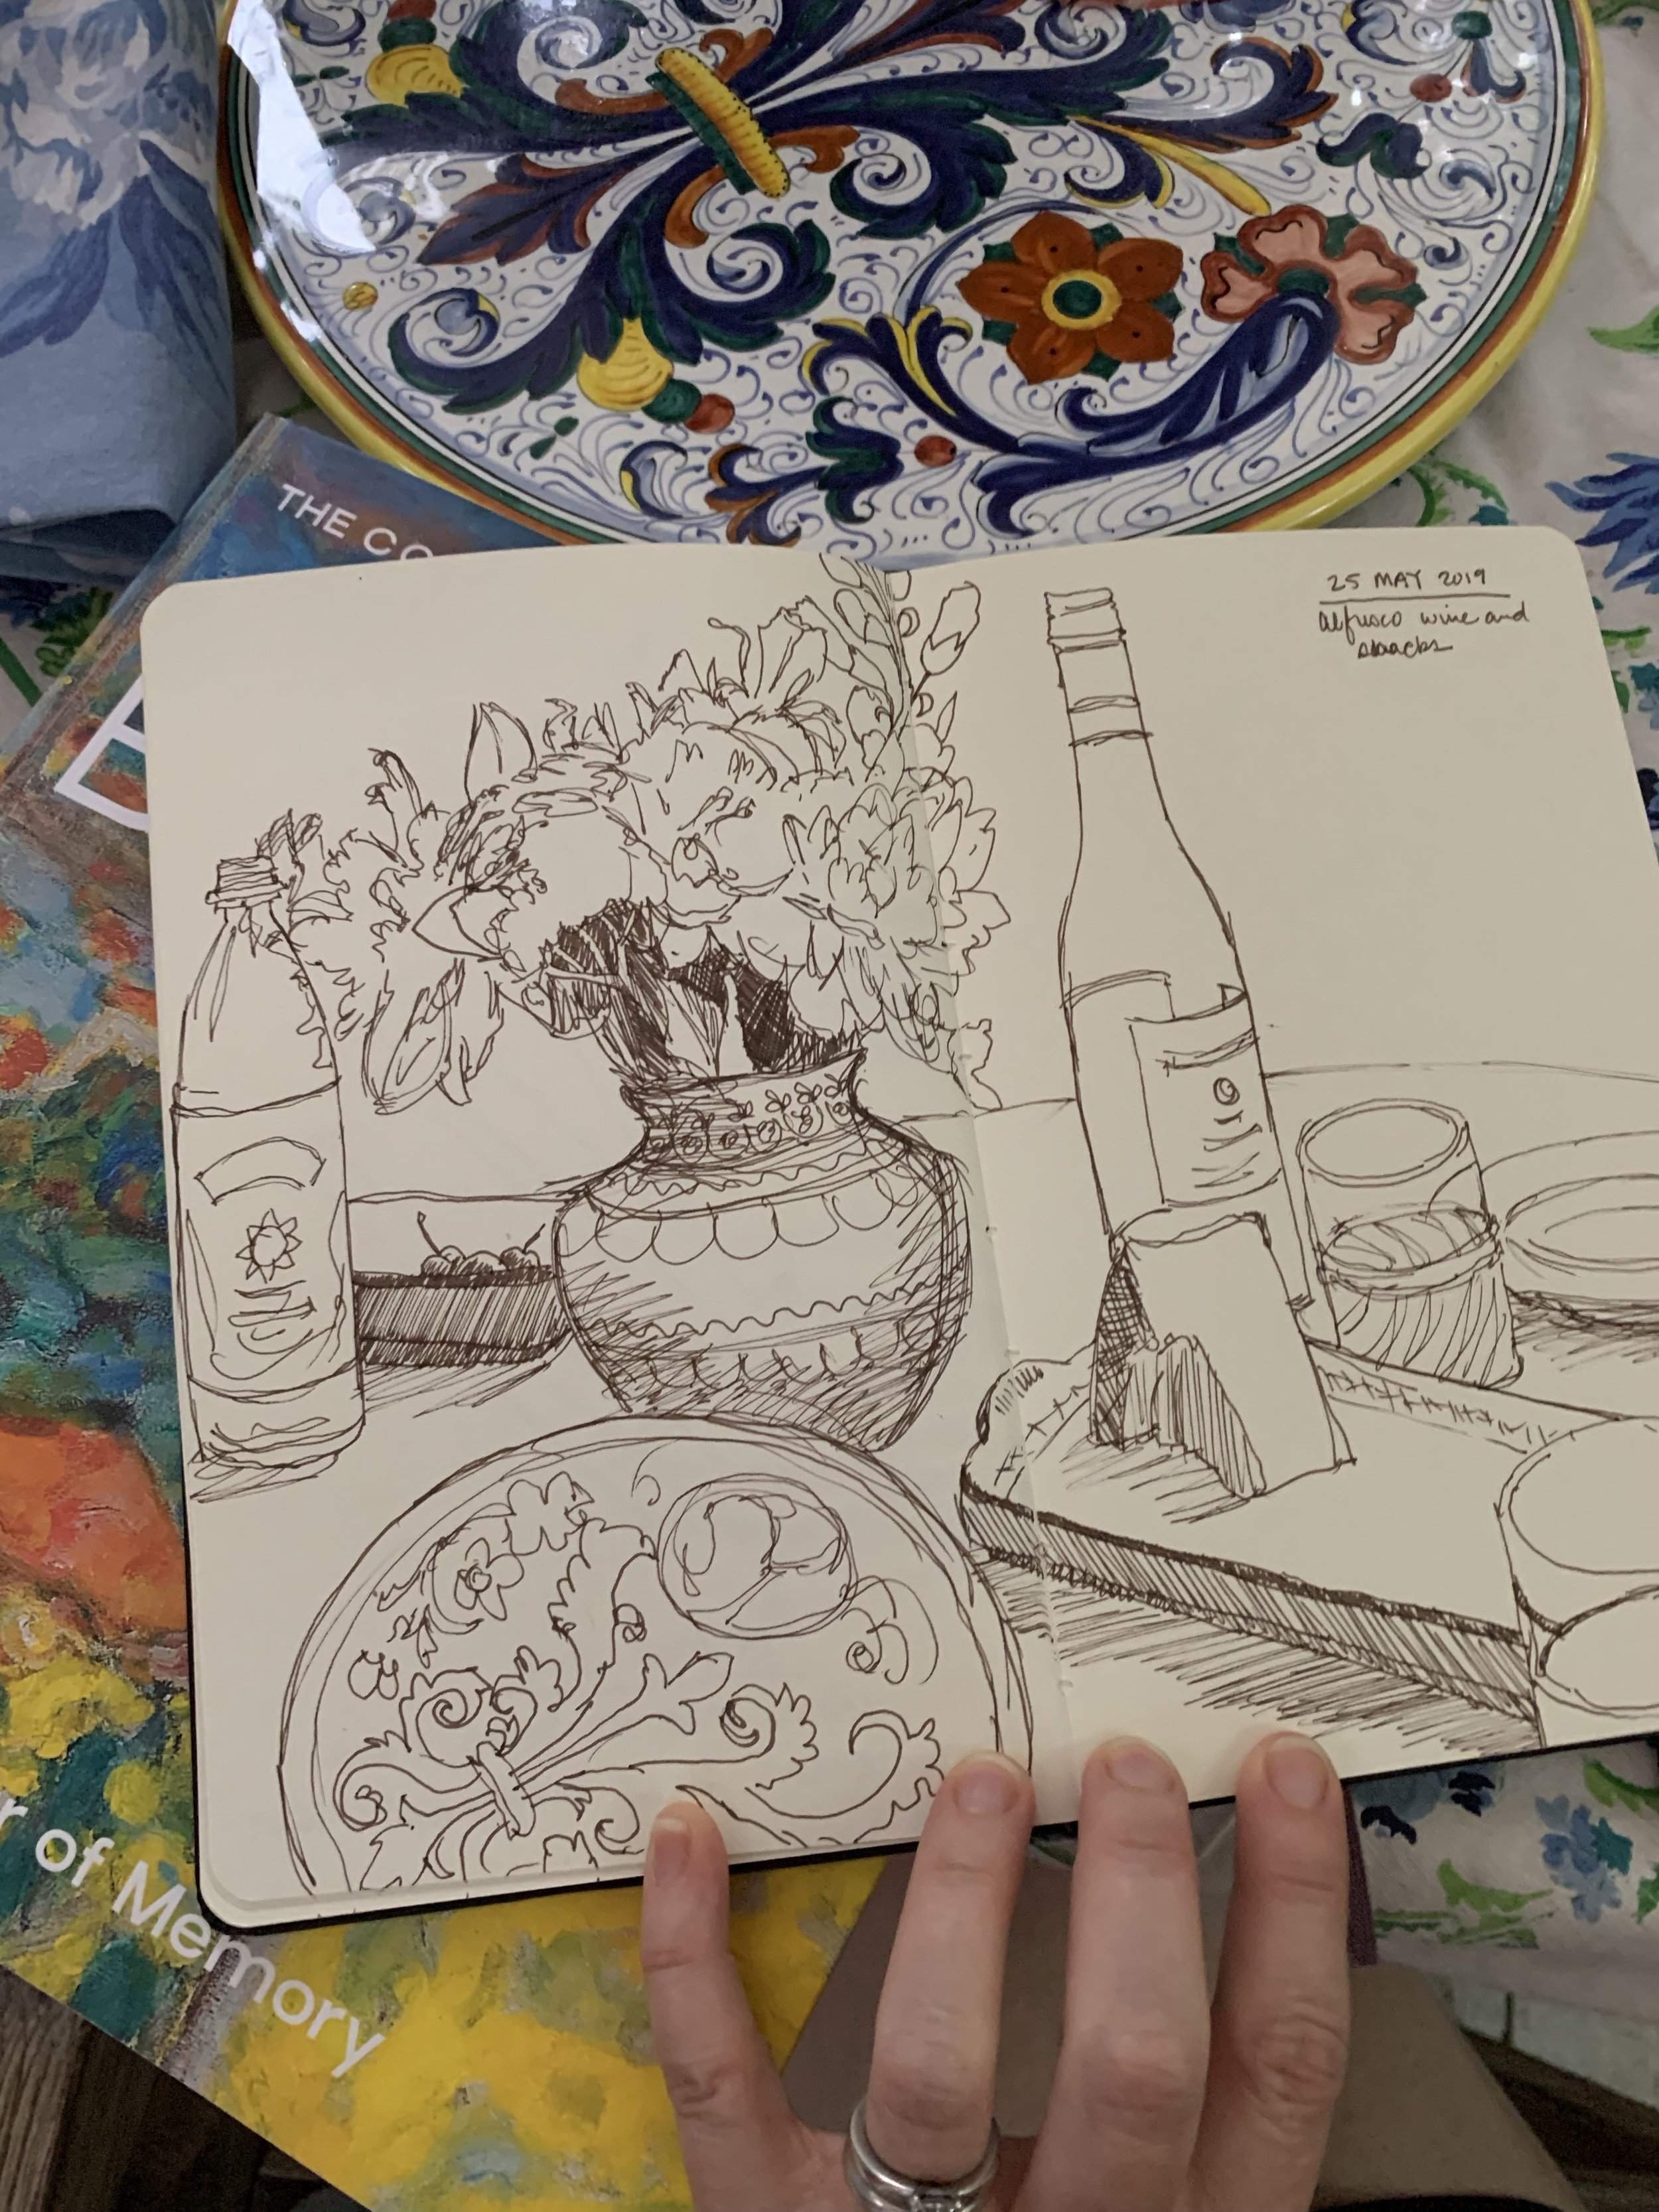 Day 145: Sketch al-fresco lunch with at a dear friend's house.